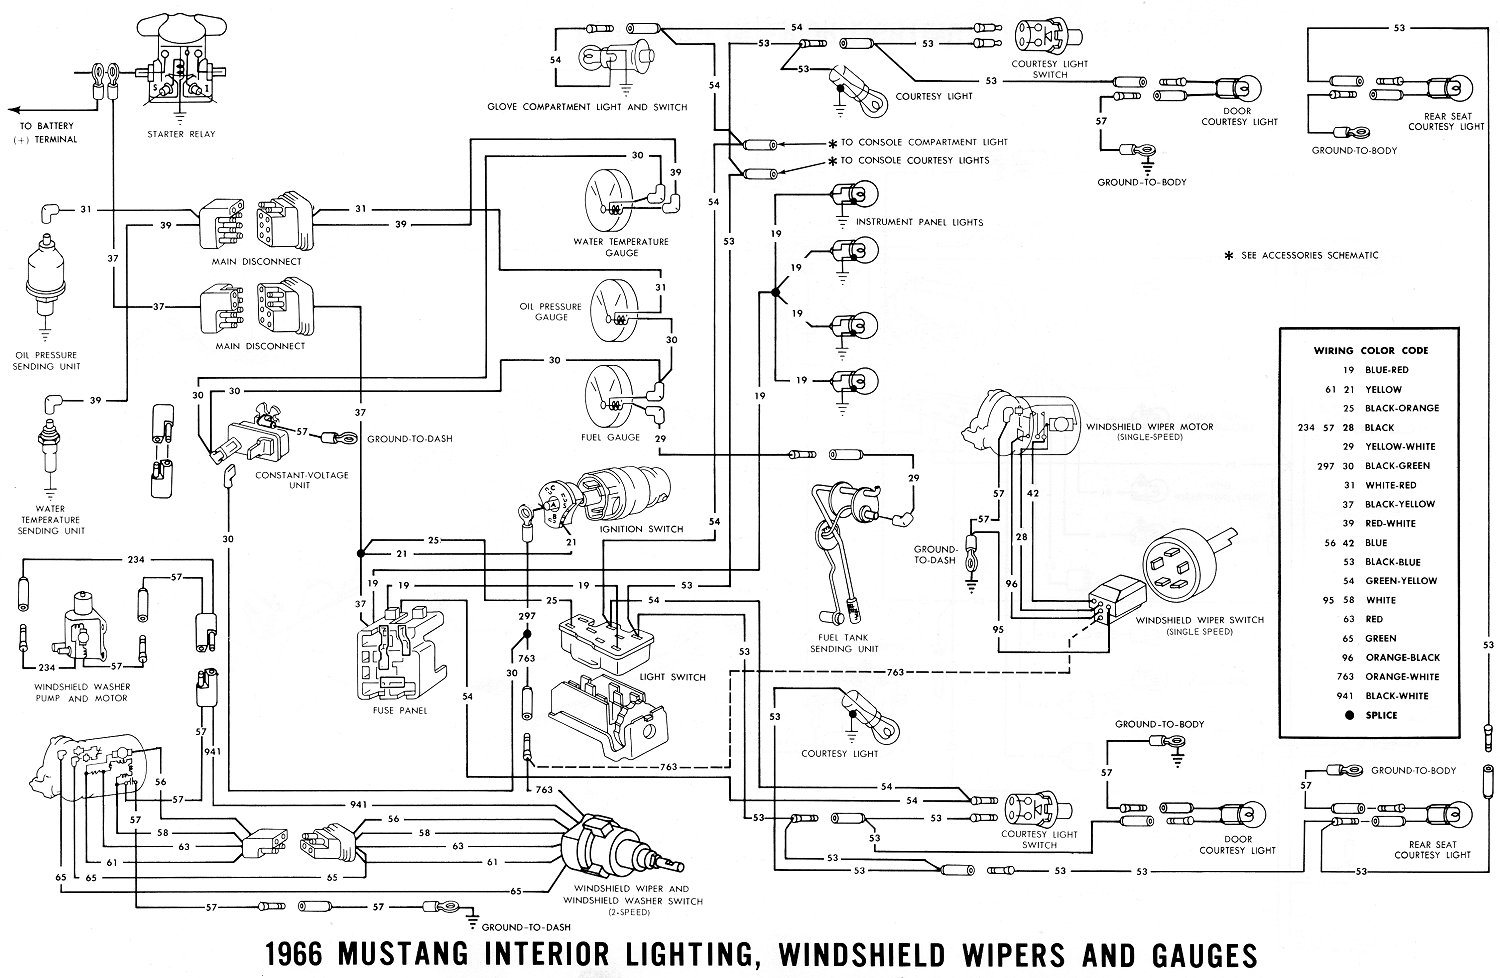 66inter1 vintage mustang wiring diagrams 1965 mustang wiring diagram pdf at edmiracle.co